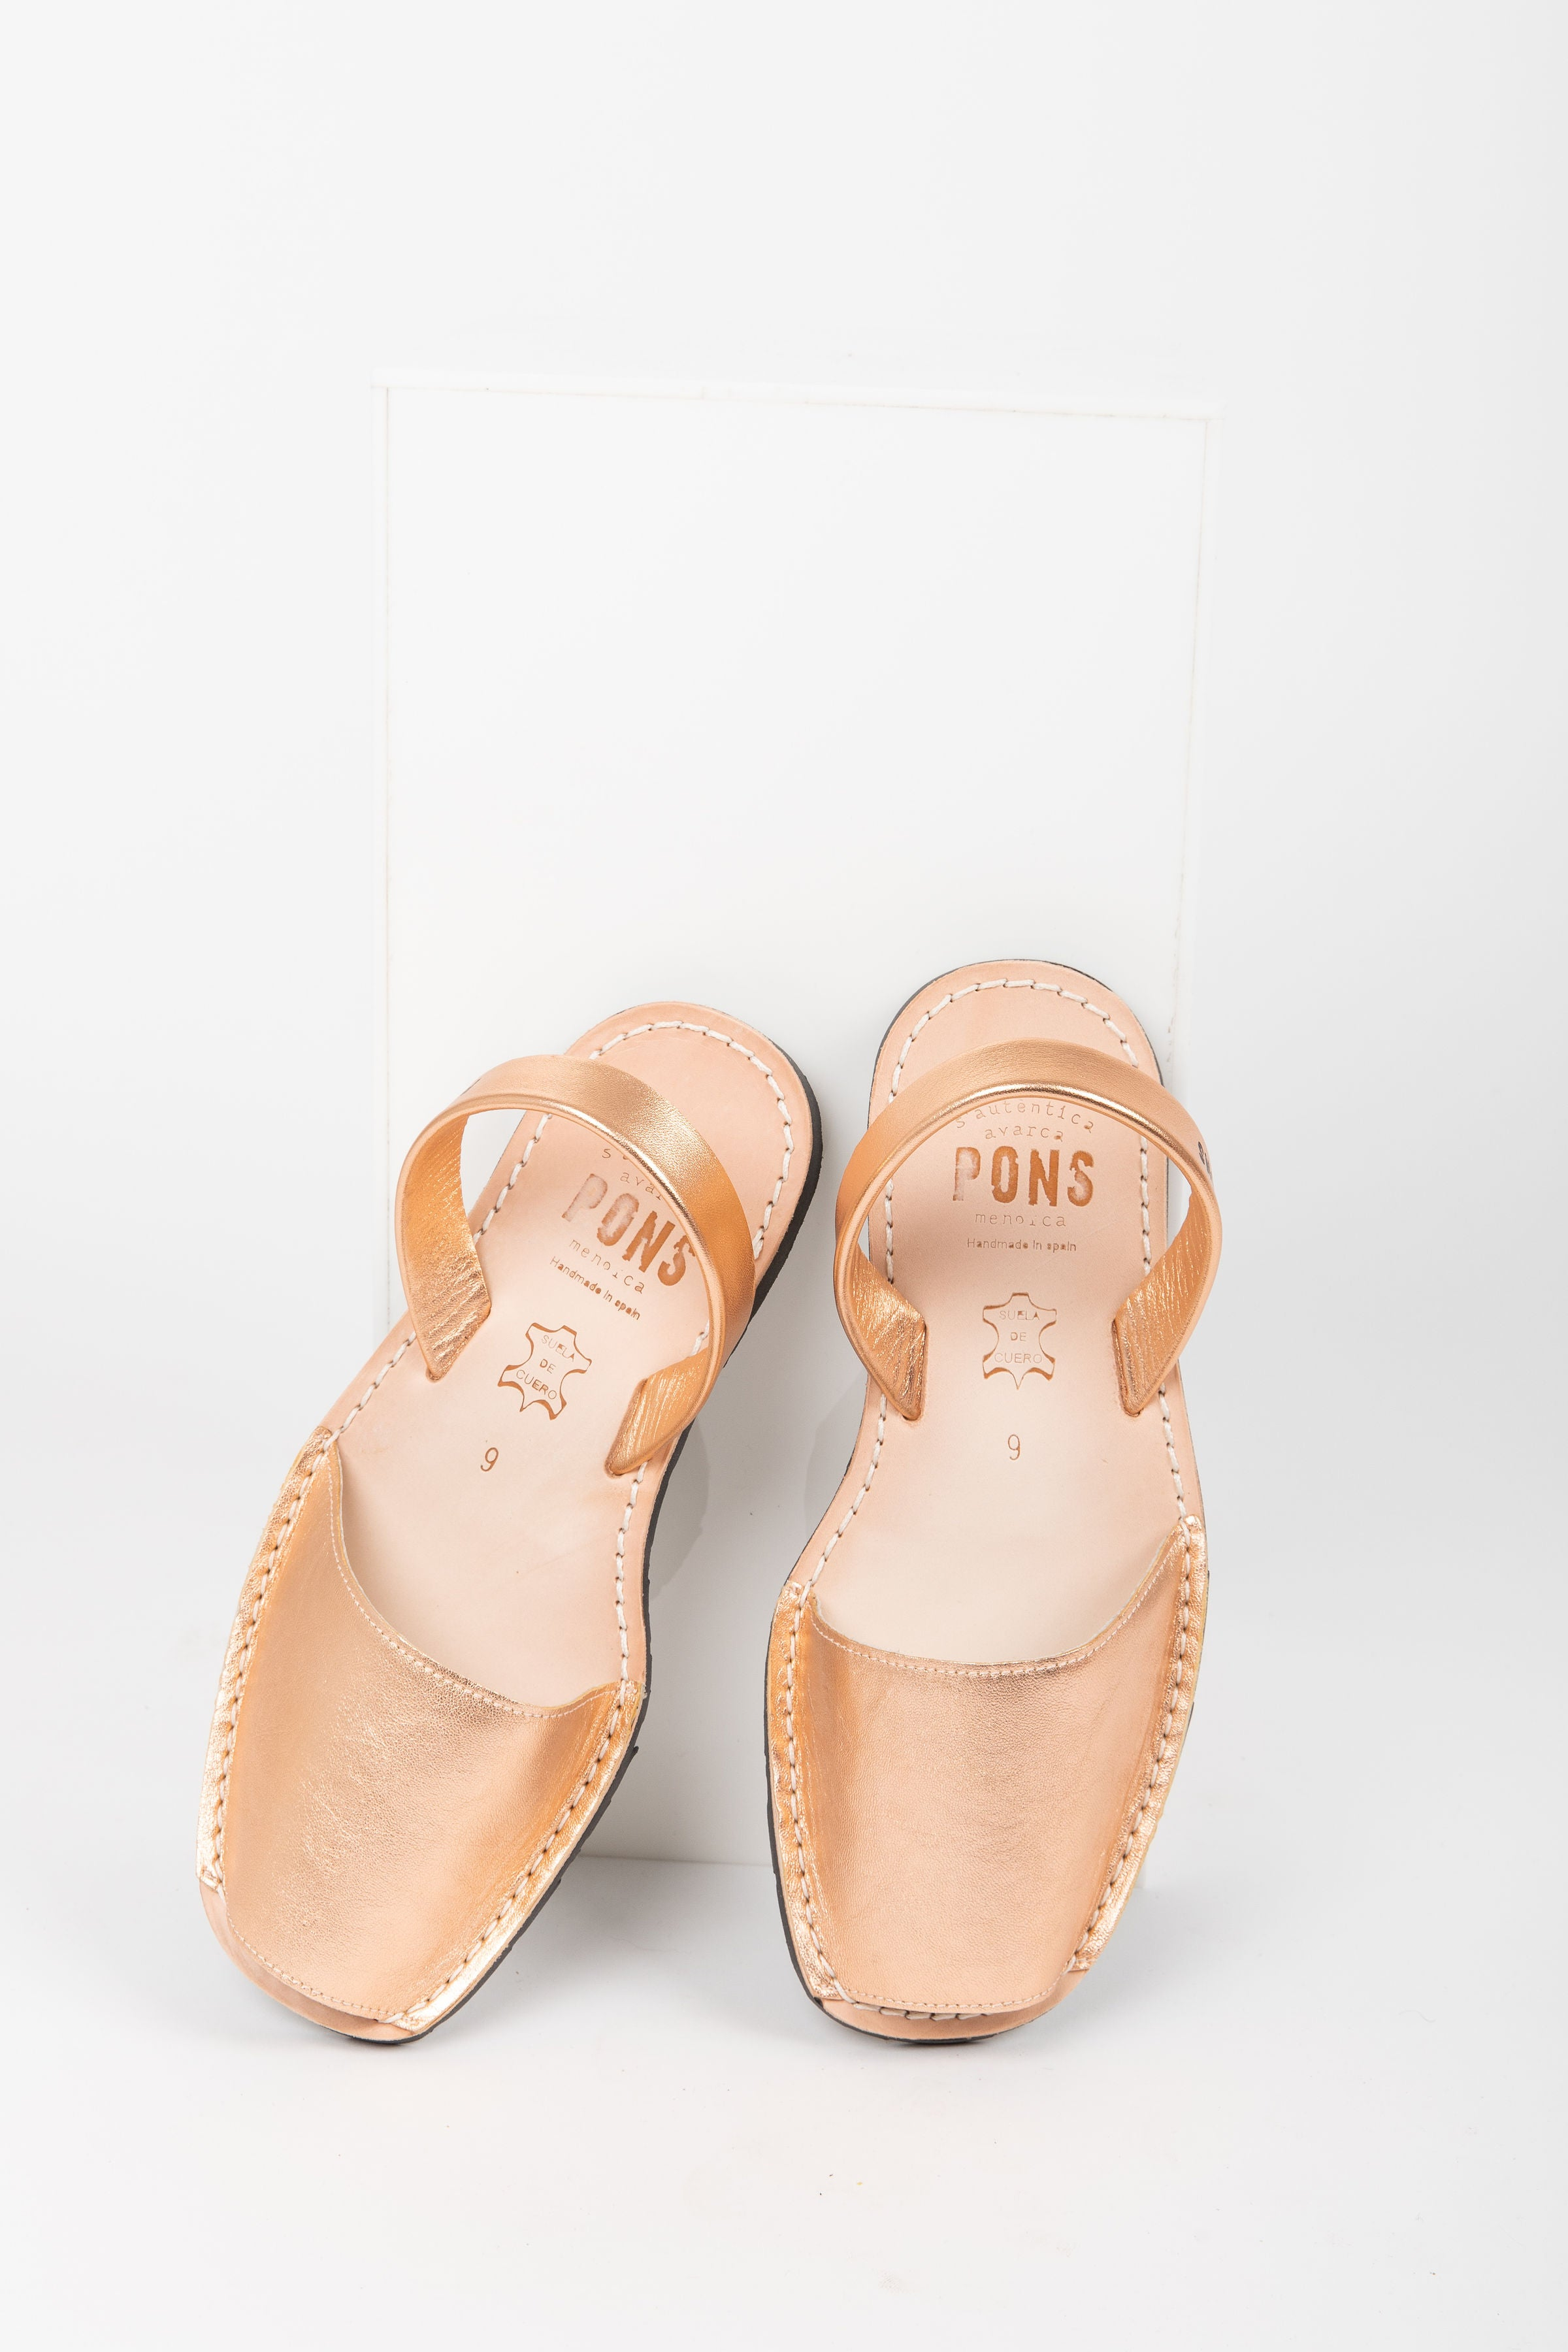 PONS: Classic Style in Rose Gold